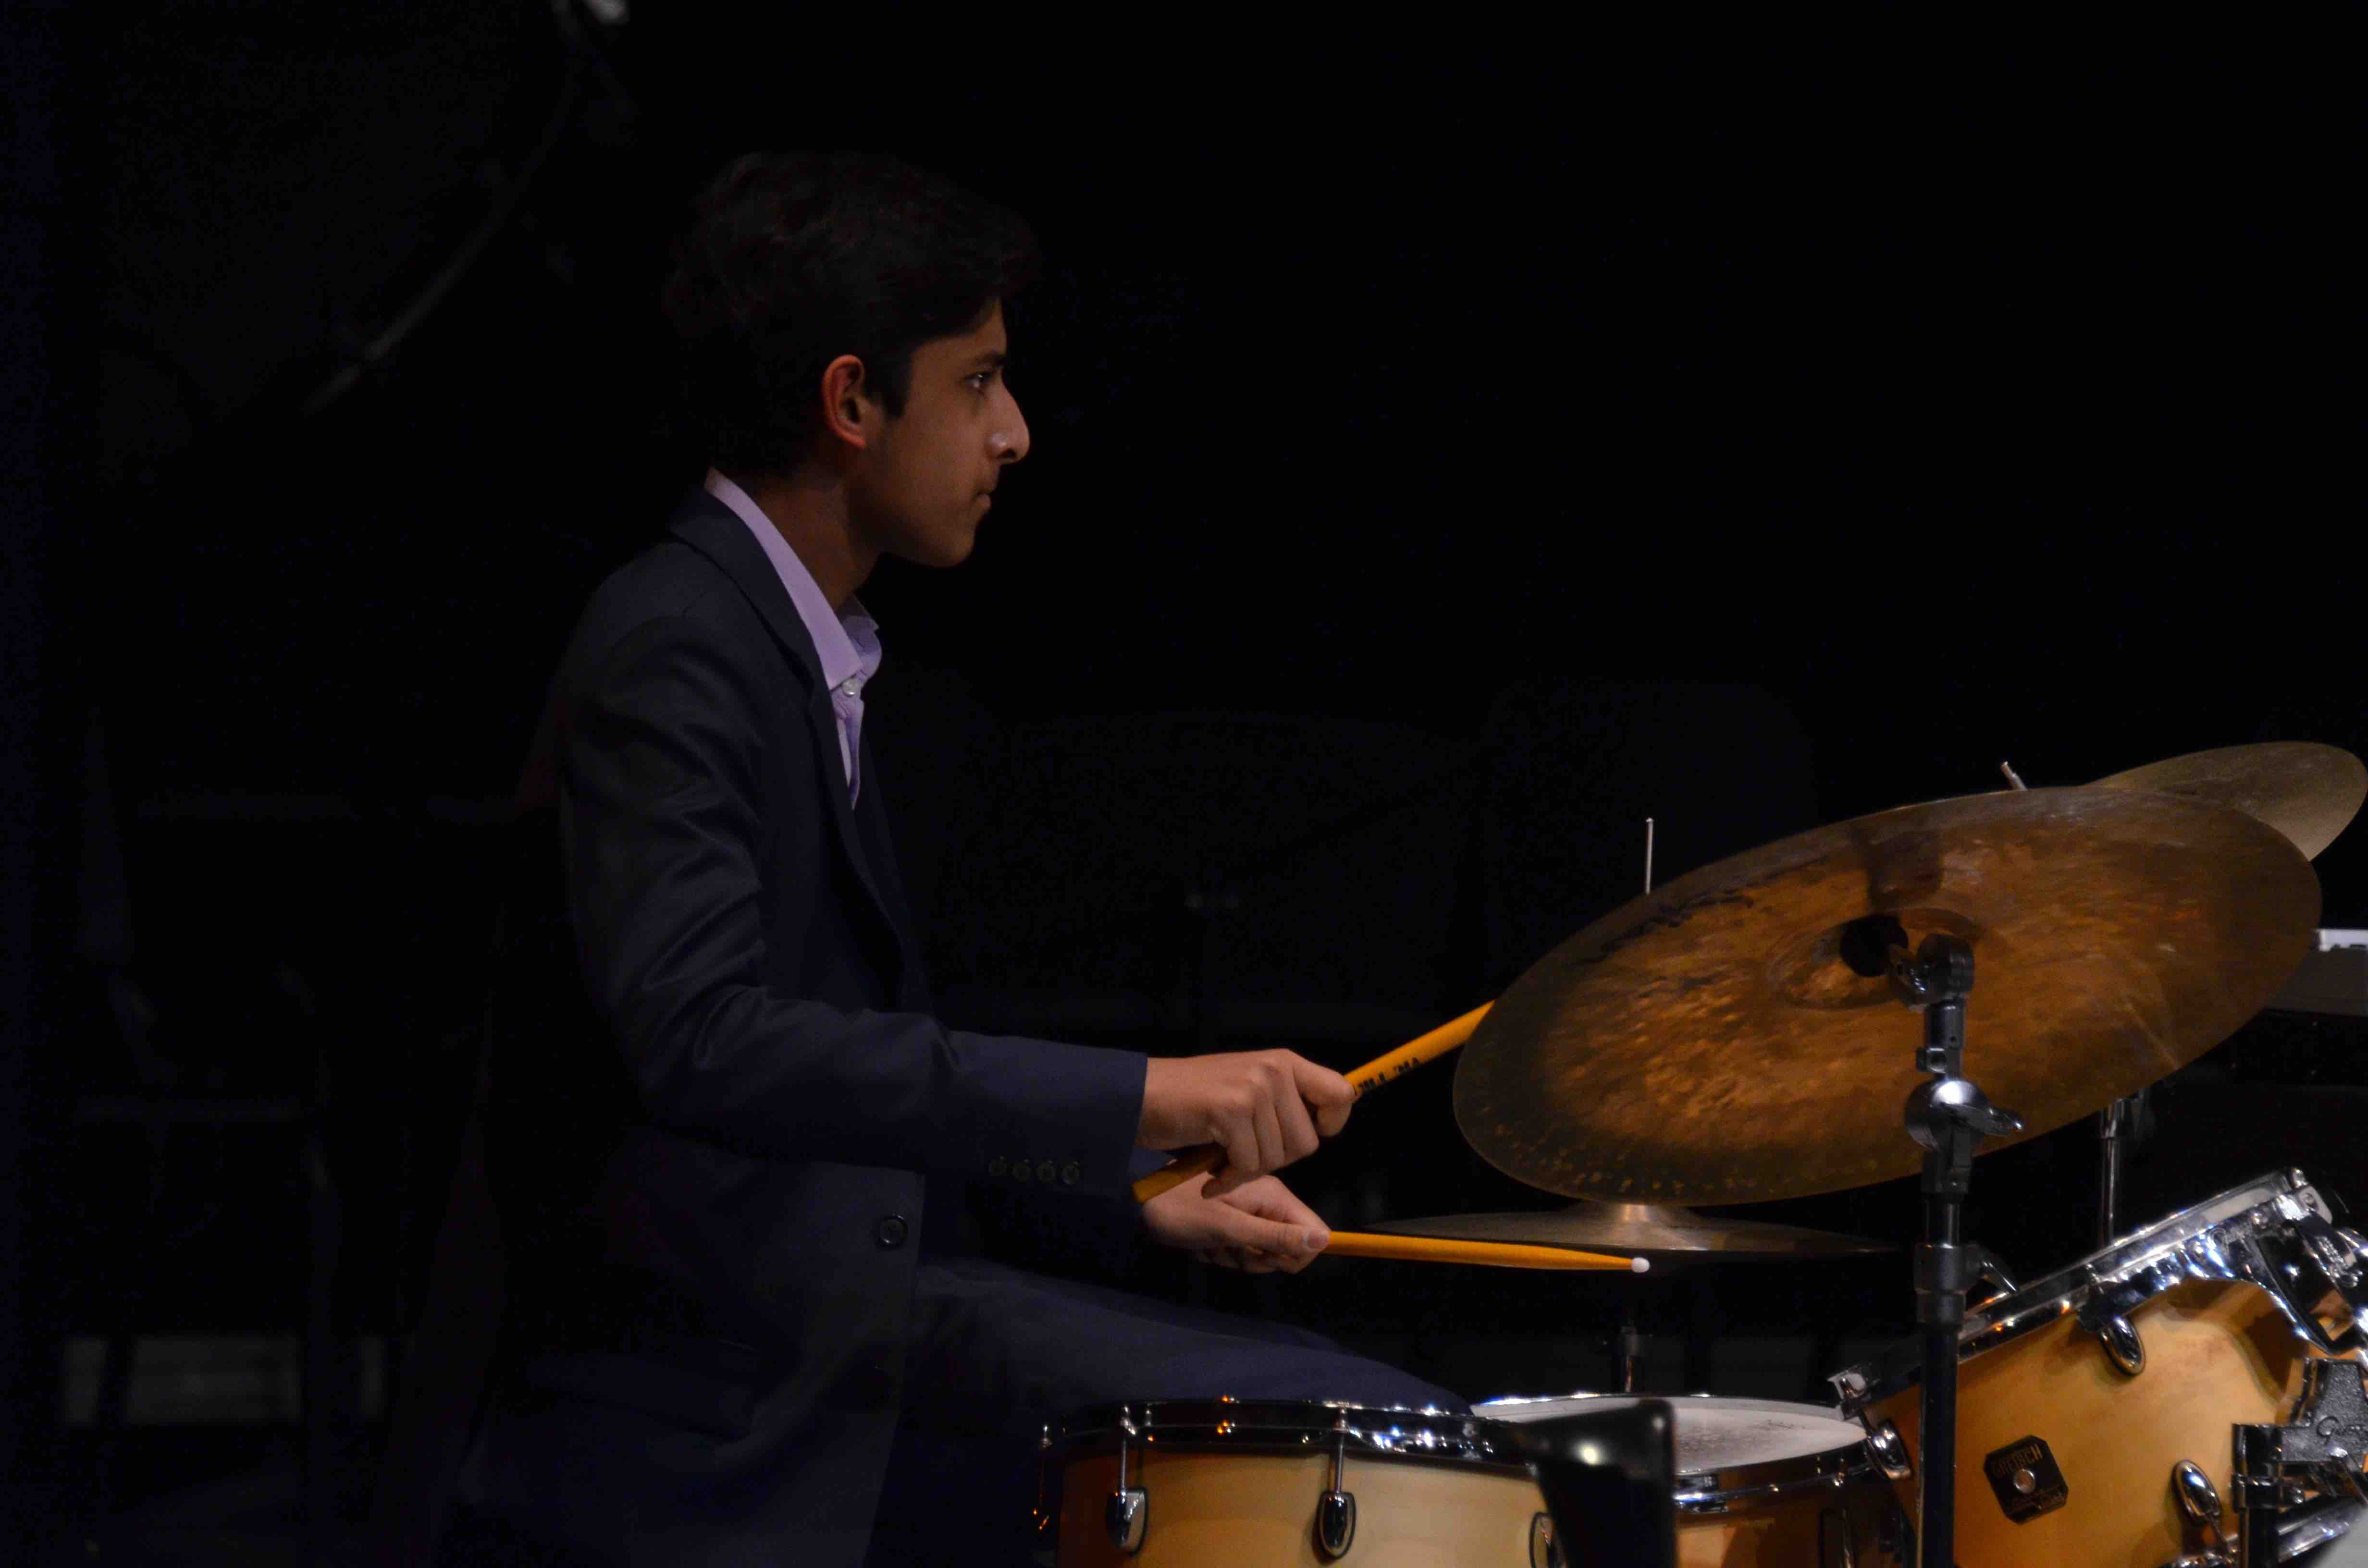 Neil+Ramaswamy+%2810%29+plays+drums+while+performing+with+the+upper+school+Jazz+Band.+The+Winter+Concert+took+place+on+January+13+at+the+Mexican+Heritage+Theater.